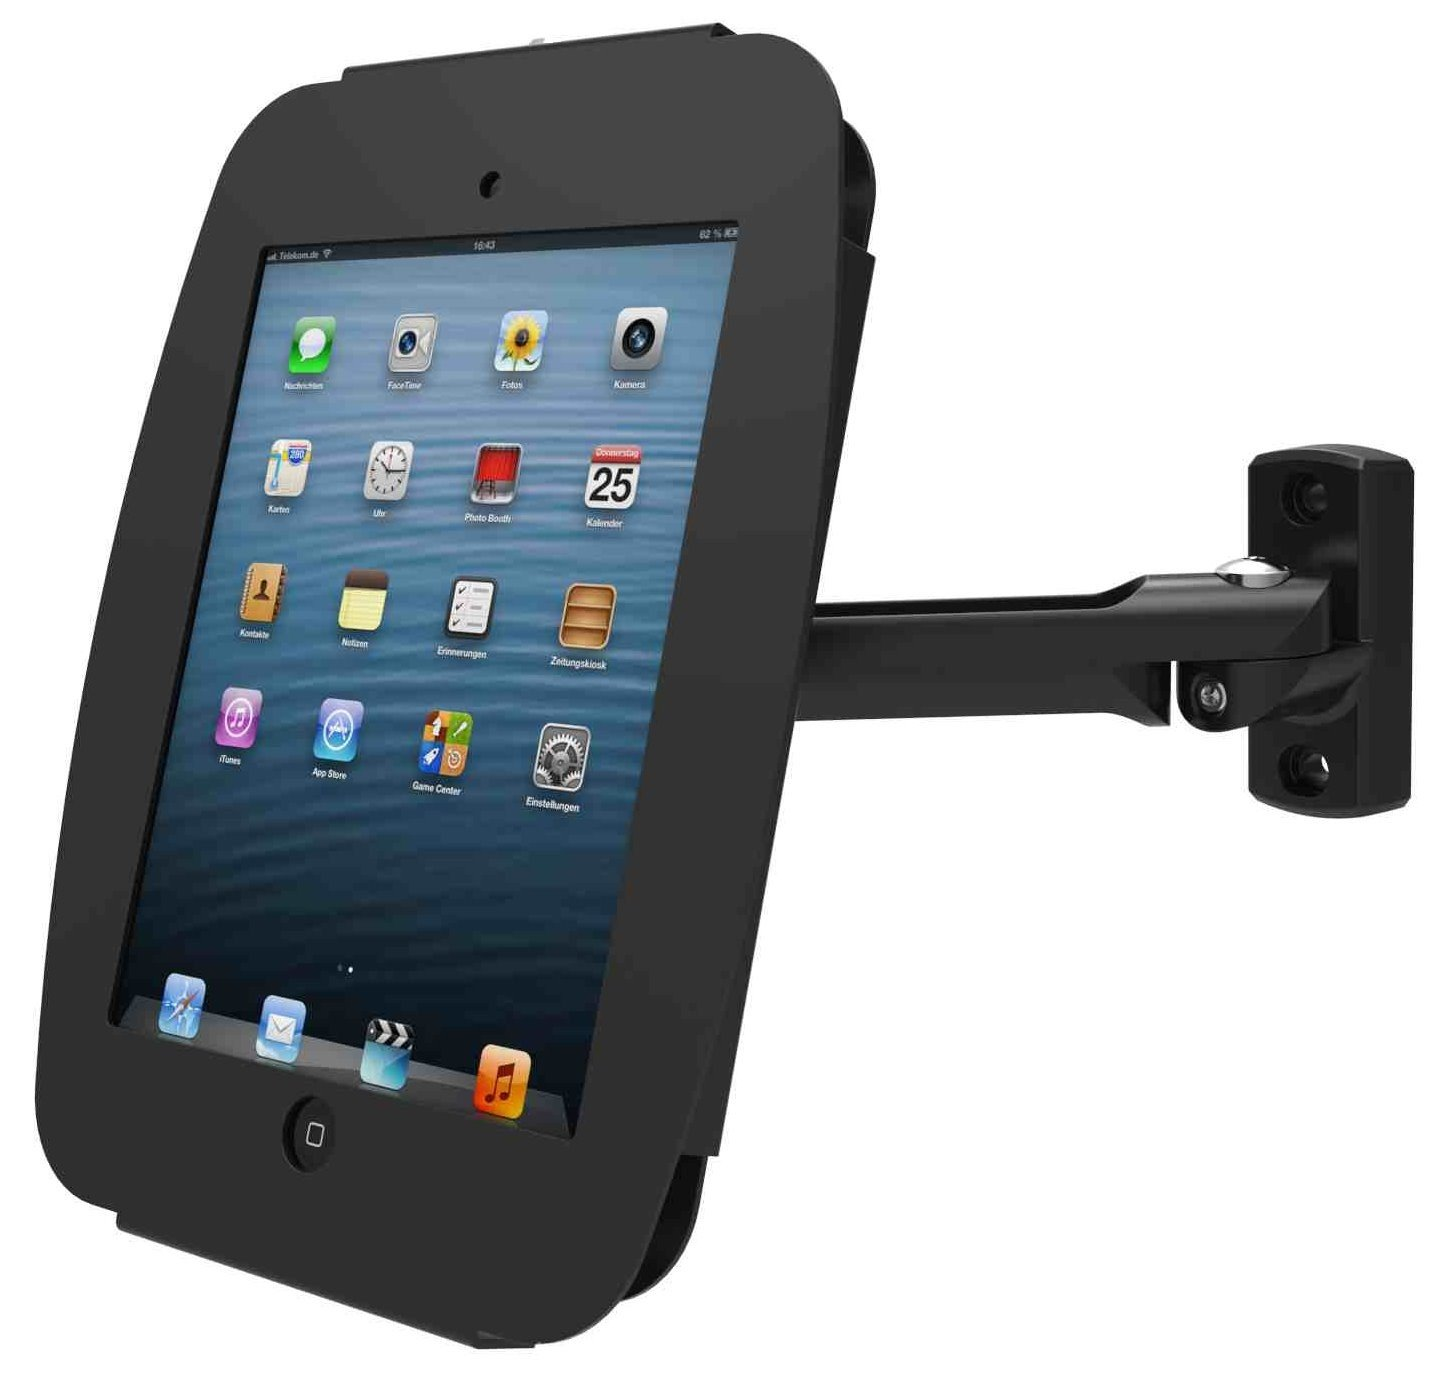 Maclocks 827B235SMENB Space Enclosure Stand with Swing Arm Wall Mount for iPad Mini (Black) by Compulocks (Image #2)